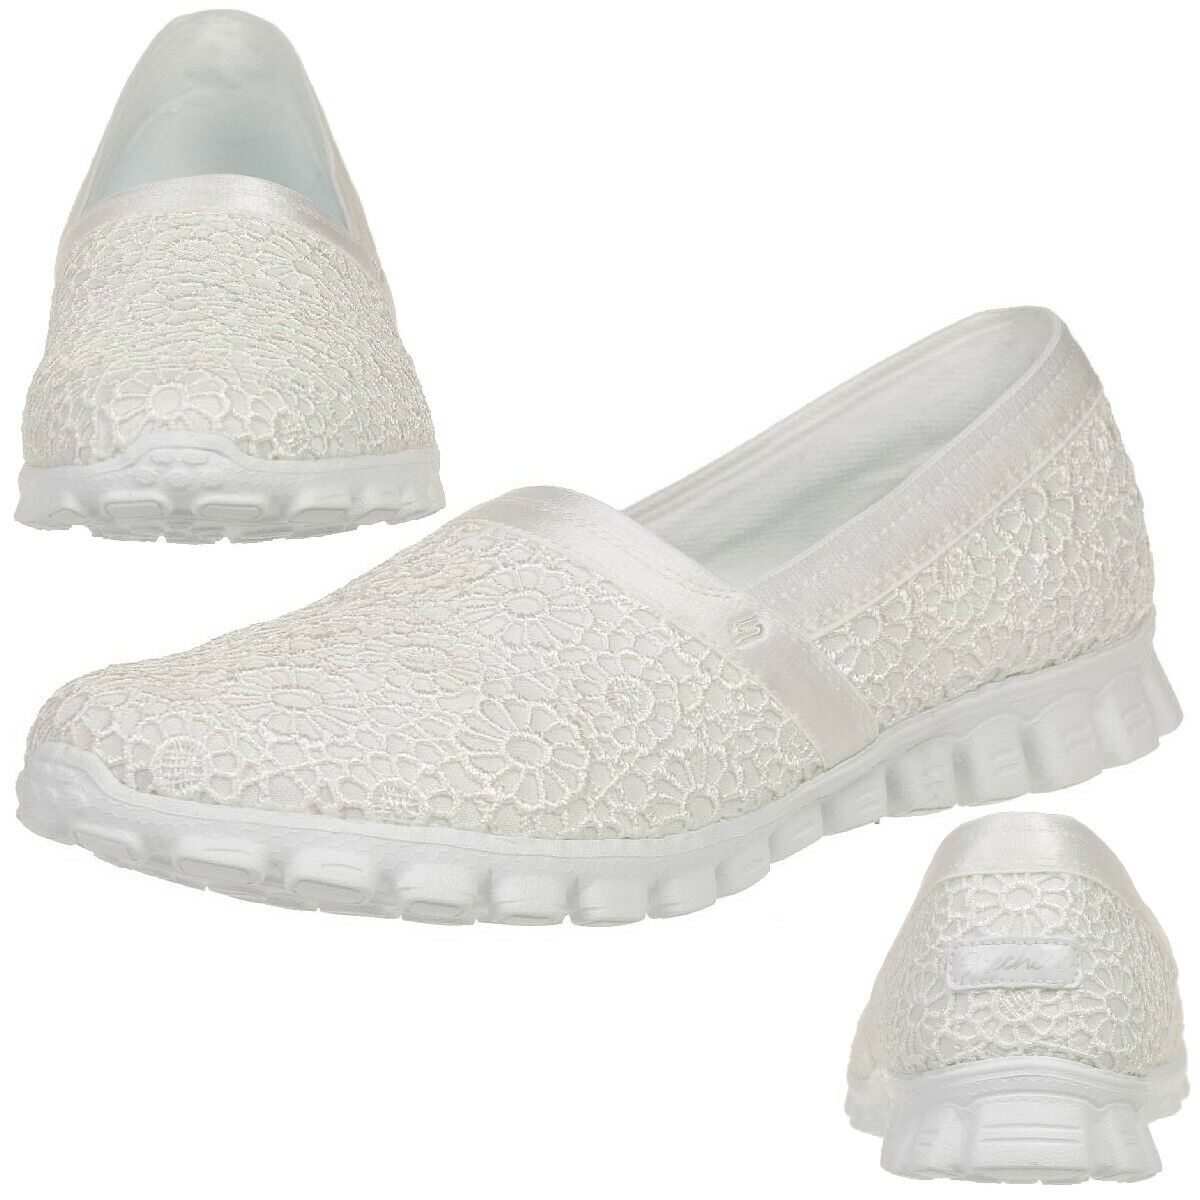 Skechers EZ Flex 2 Make Believe femmes D'été chaussures Slip On Slipper